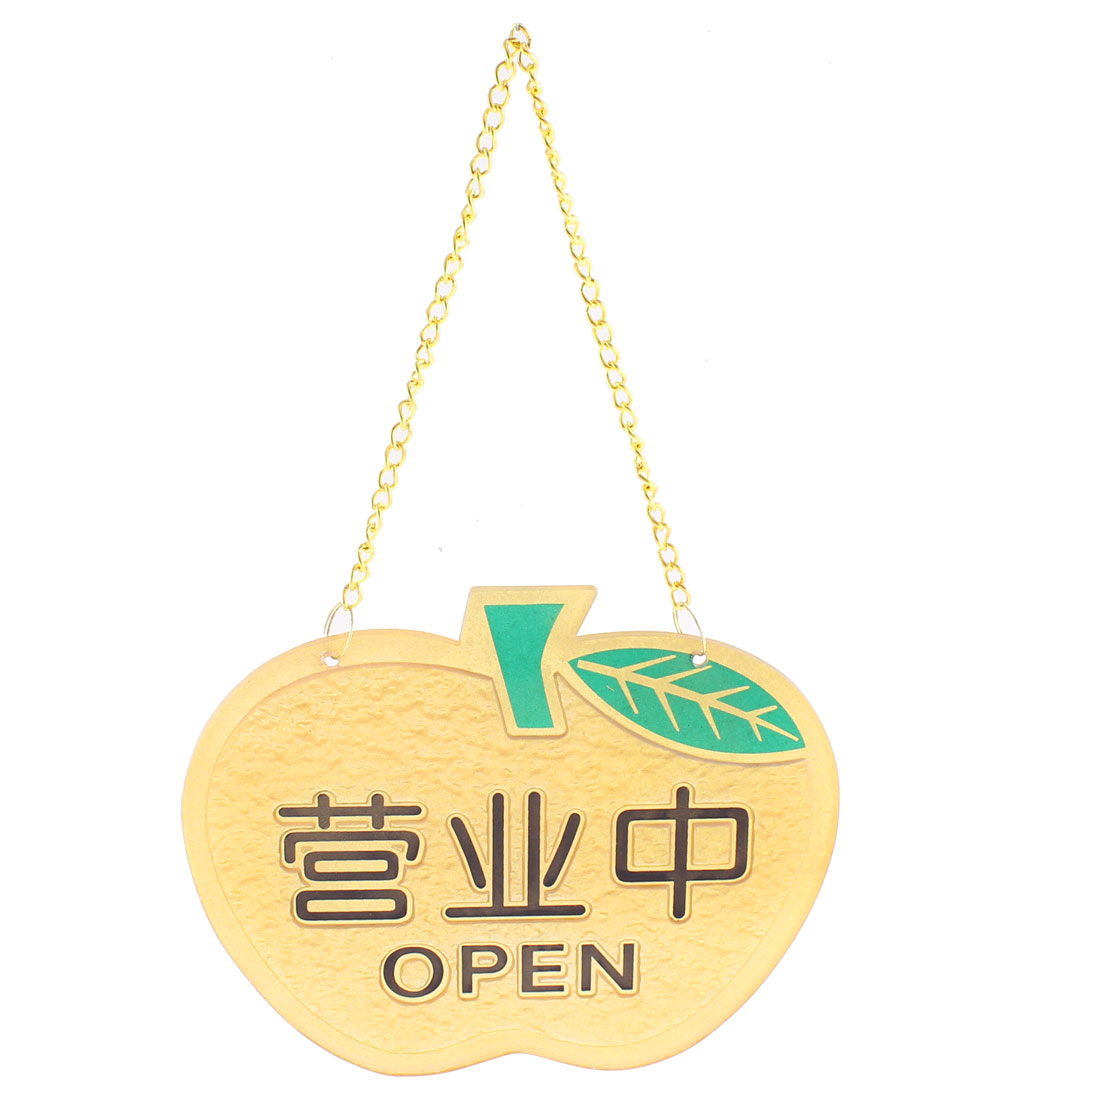 Store Shop Metal Chain Hanging Open Closed Sign Info Board Yellow